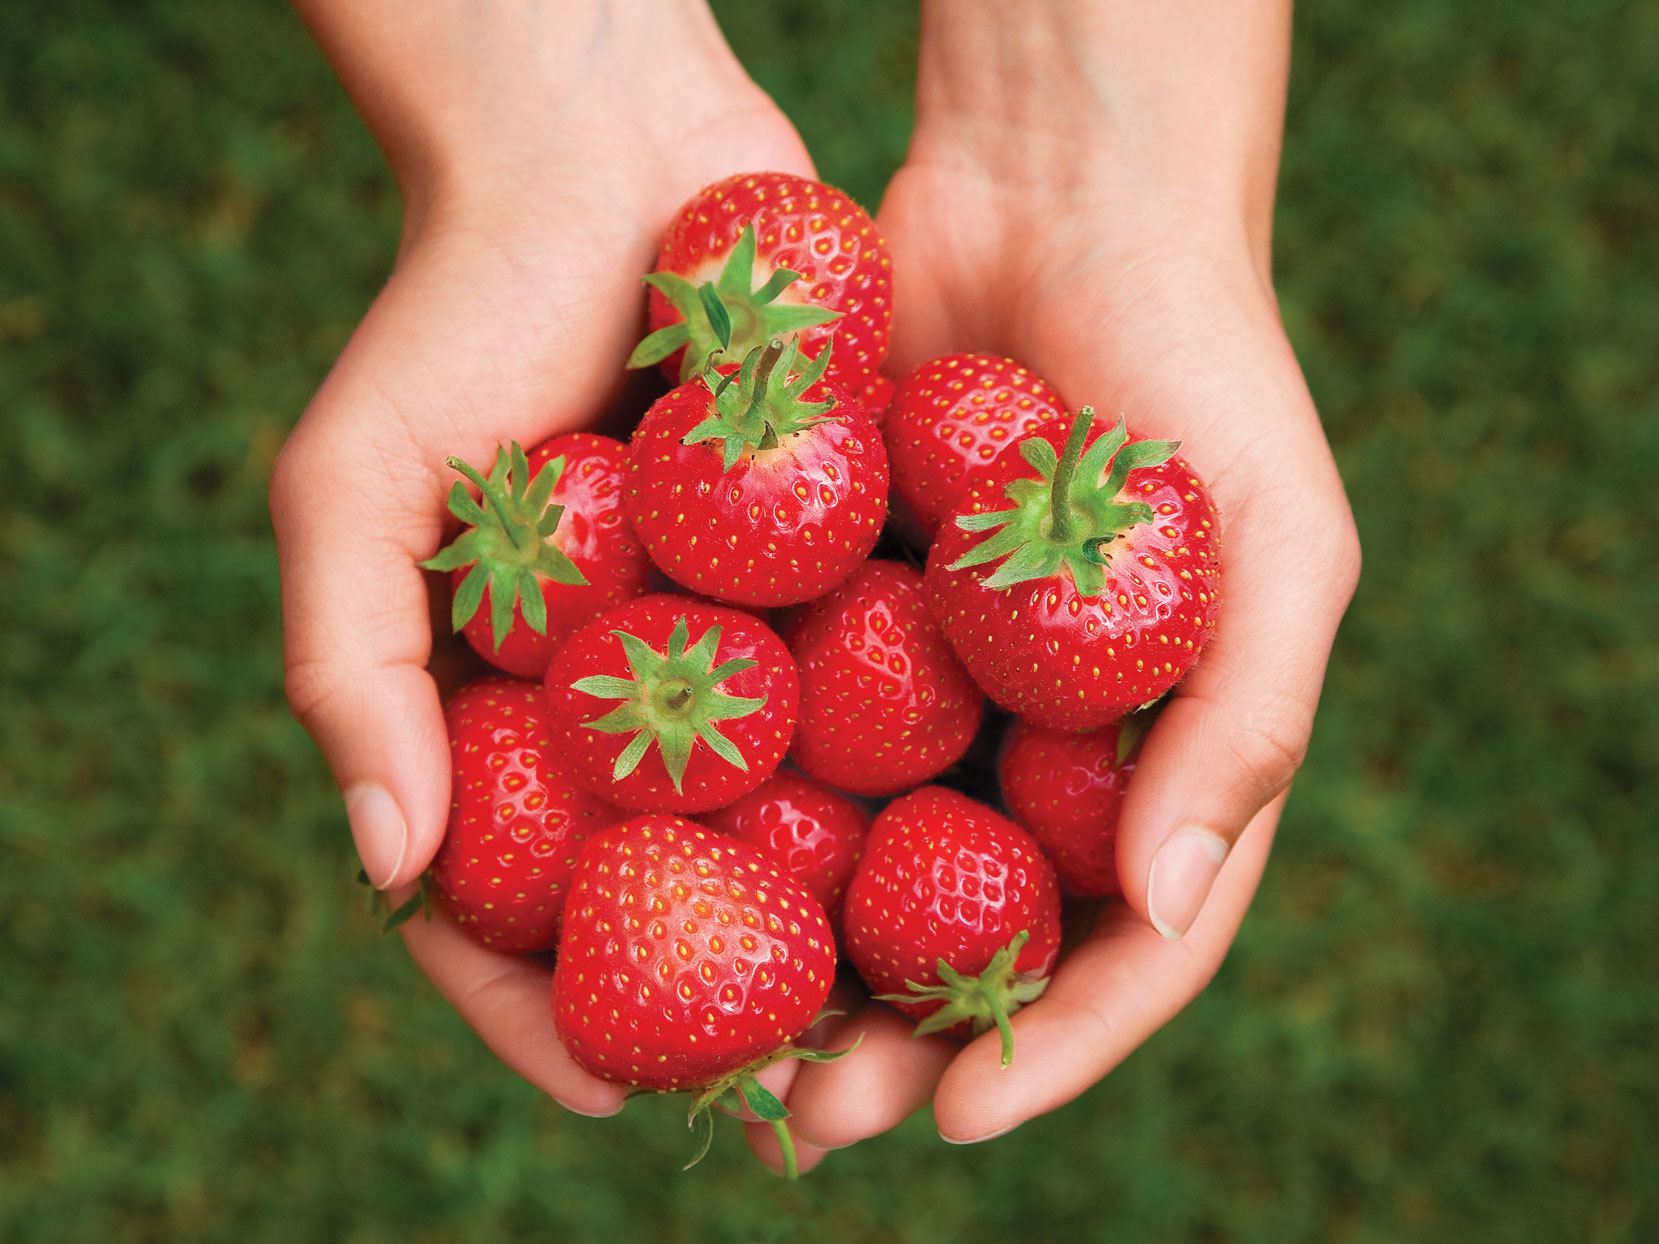 2 hands holding bundle of strawberries